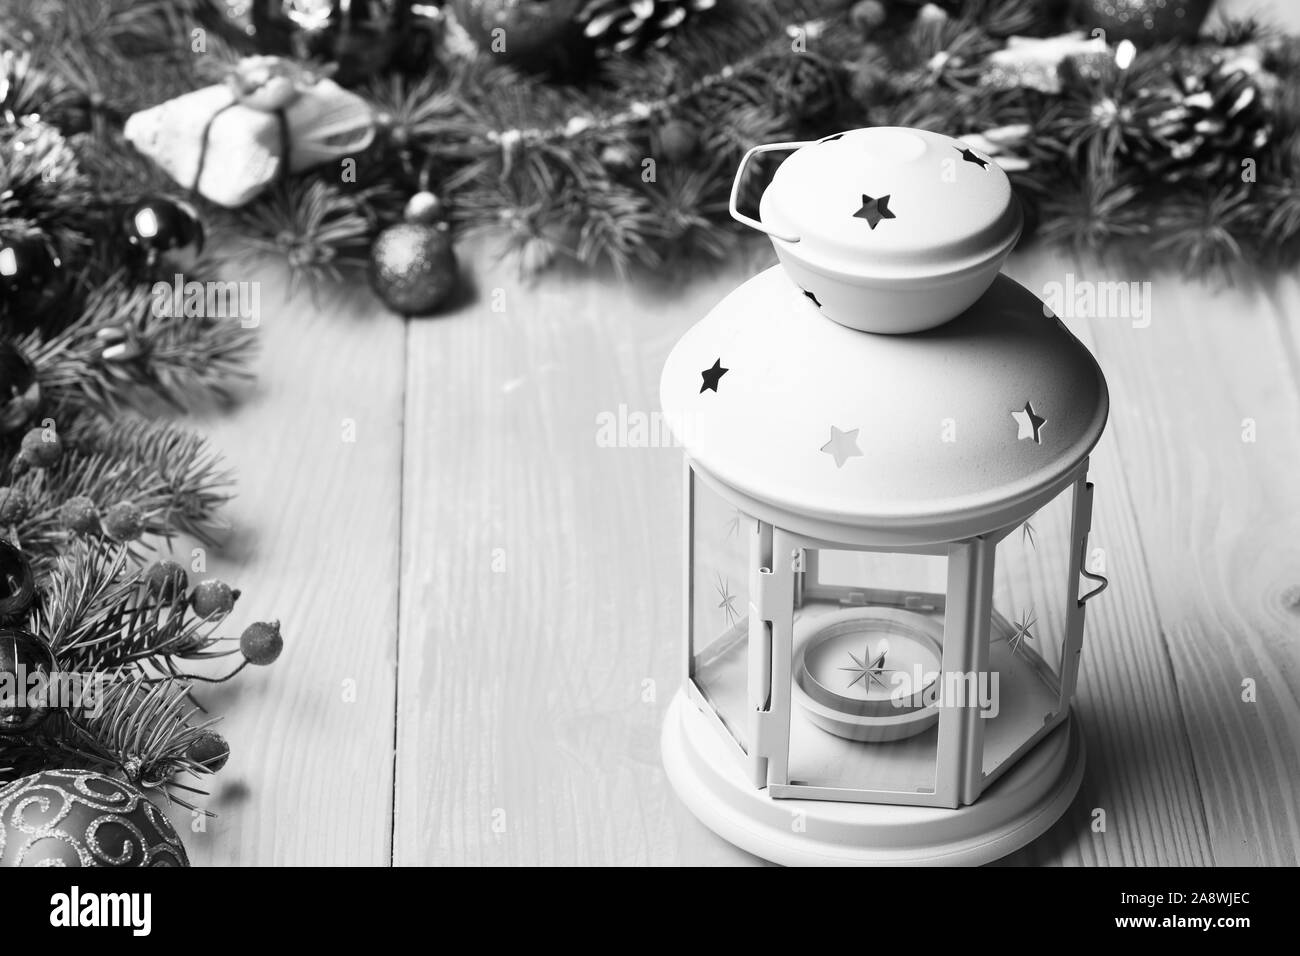 Winter Time And New Year Card Concept Composition Of Christmas Tree Decor Lantern In Romantic White Color Near Decorated Fir Tree Branches Christmas Decorations On Yellow Wooden Texture Background Stock Photo